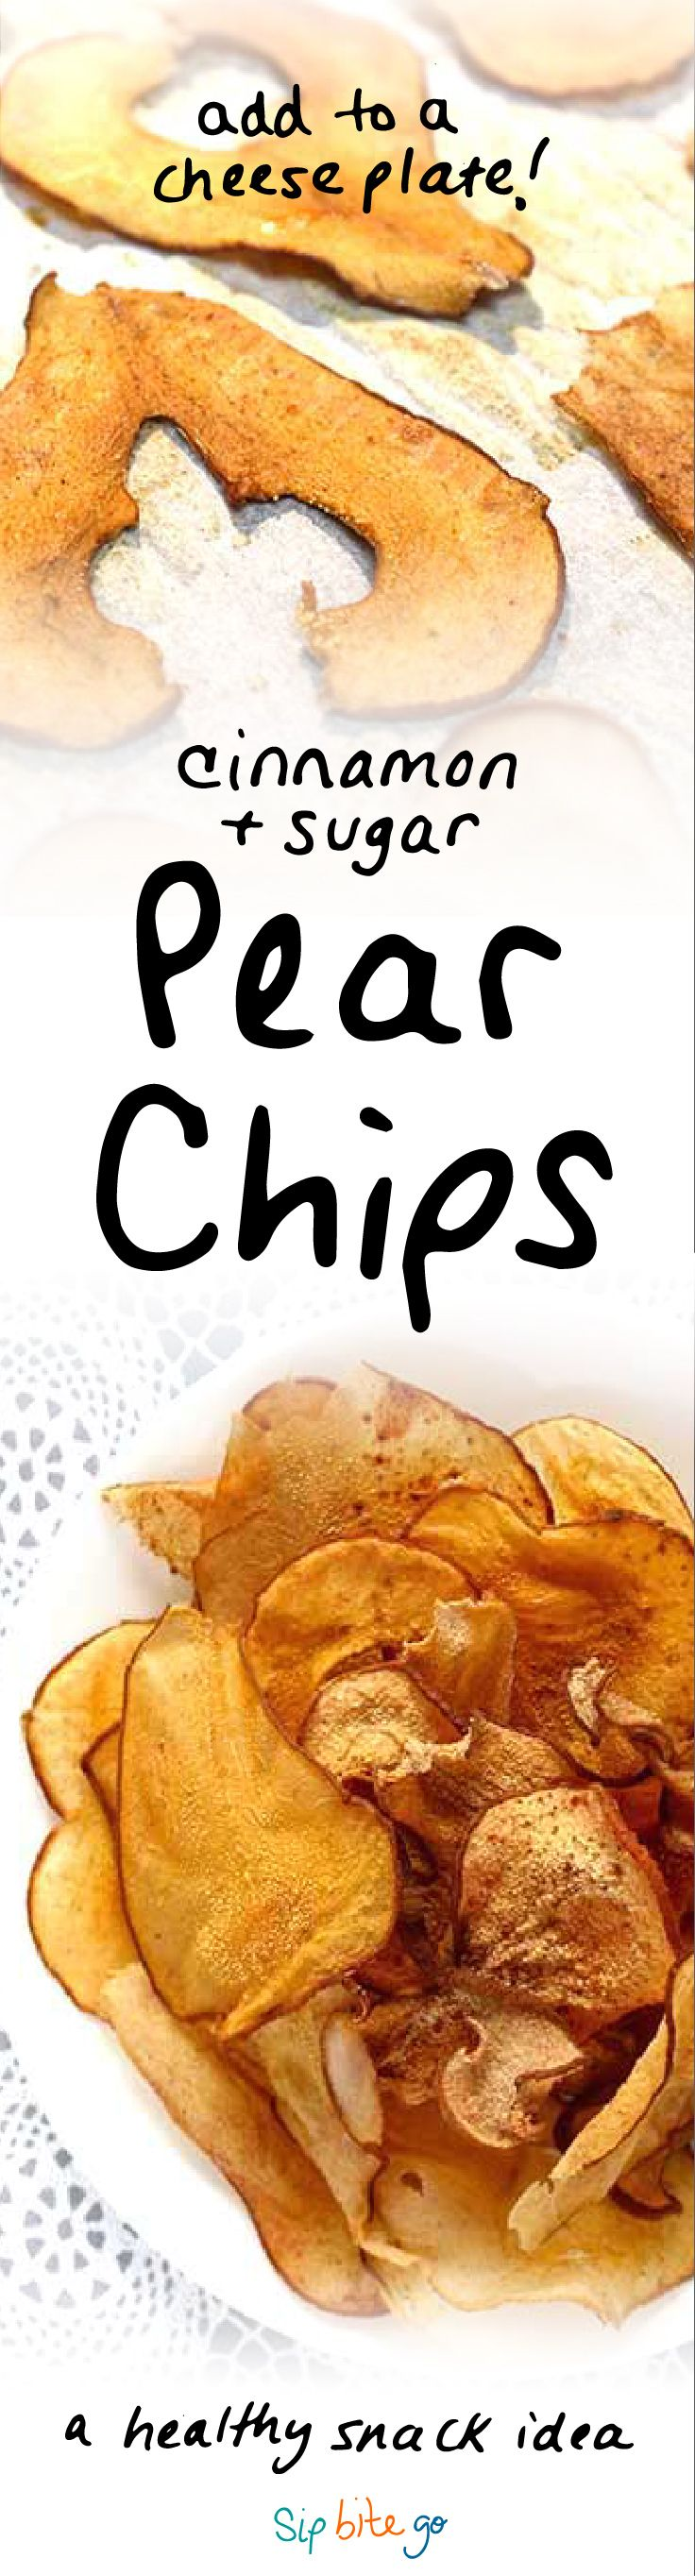 Crunchy pear chips make for a feel-good Fall recipe! Make 'em simple and healthy. Use a light dusting of sugar and cinnamon. They are great for breakfast on the go, in a salad with goat cheese, or as a healthy snack or dessert or cheese plate. They can be baked in the oven or popped in the dehydrator for any seasonal dish - Autumn, Thanksgiving, Christmas   via http://www.sipbitego.com/cinnamon-pear-chips-oven-baked/ #healthysnack #pears #dessert